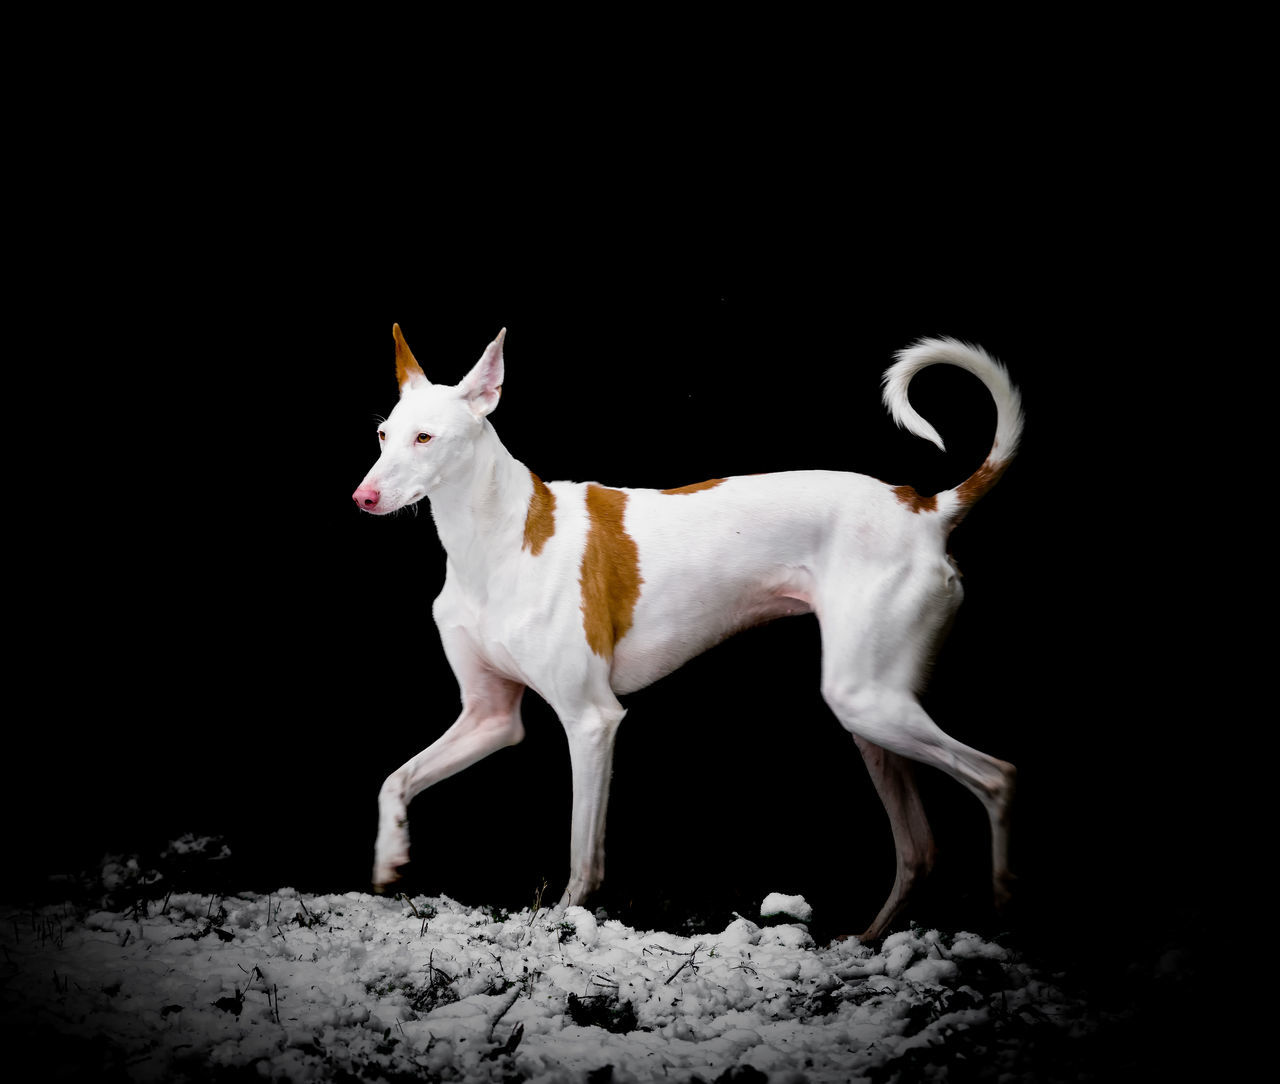 Animal Themes Black Background Dog Domestic Animals Ibizan Hound Mammal Night No People One Animal Pets Podenco Ibicenco Spanish